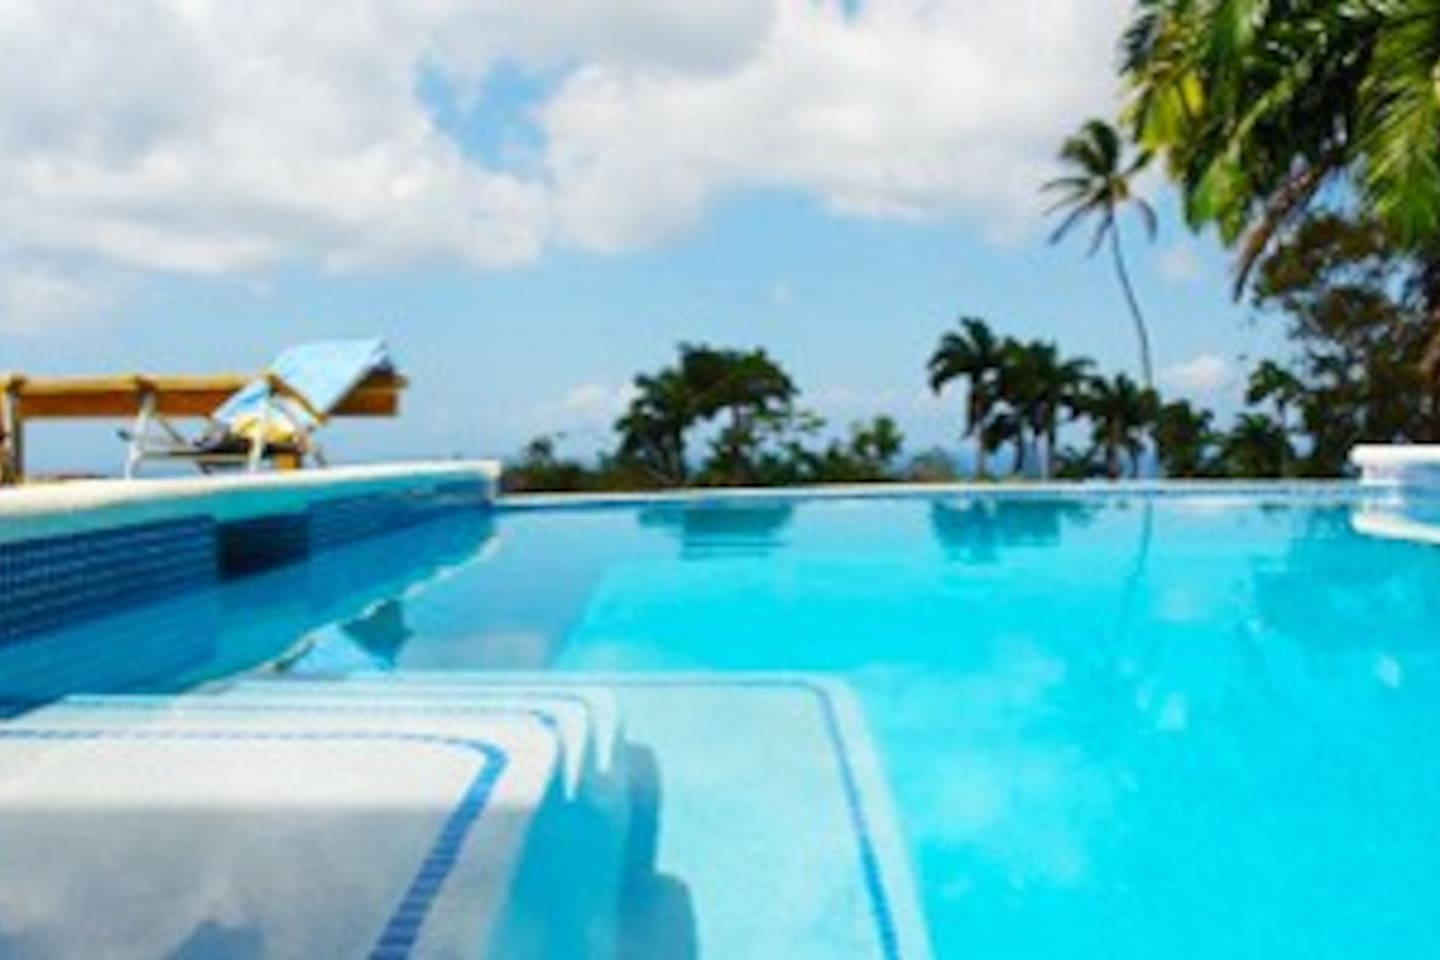 top tobago vacation rentals vacation homes condo rentals top 20 tobago vacation rentals vacation homes condo rentals tobago tobago vacation rentals vacation rentals in tobago